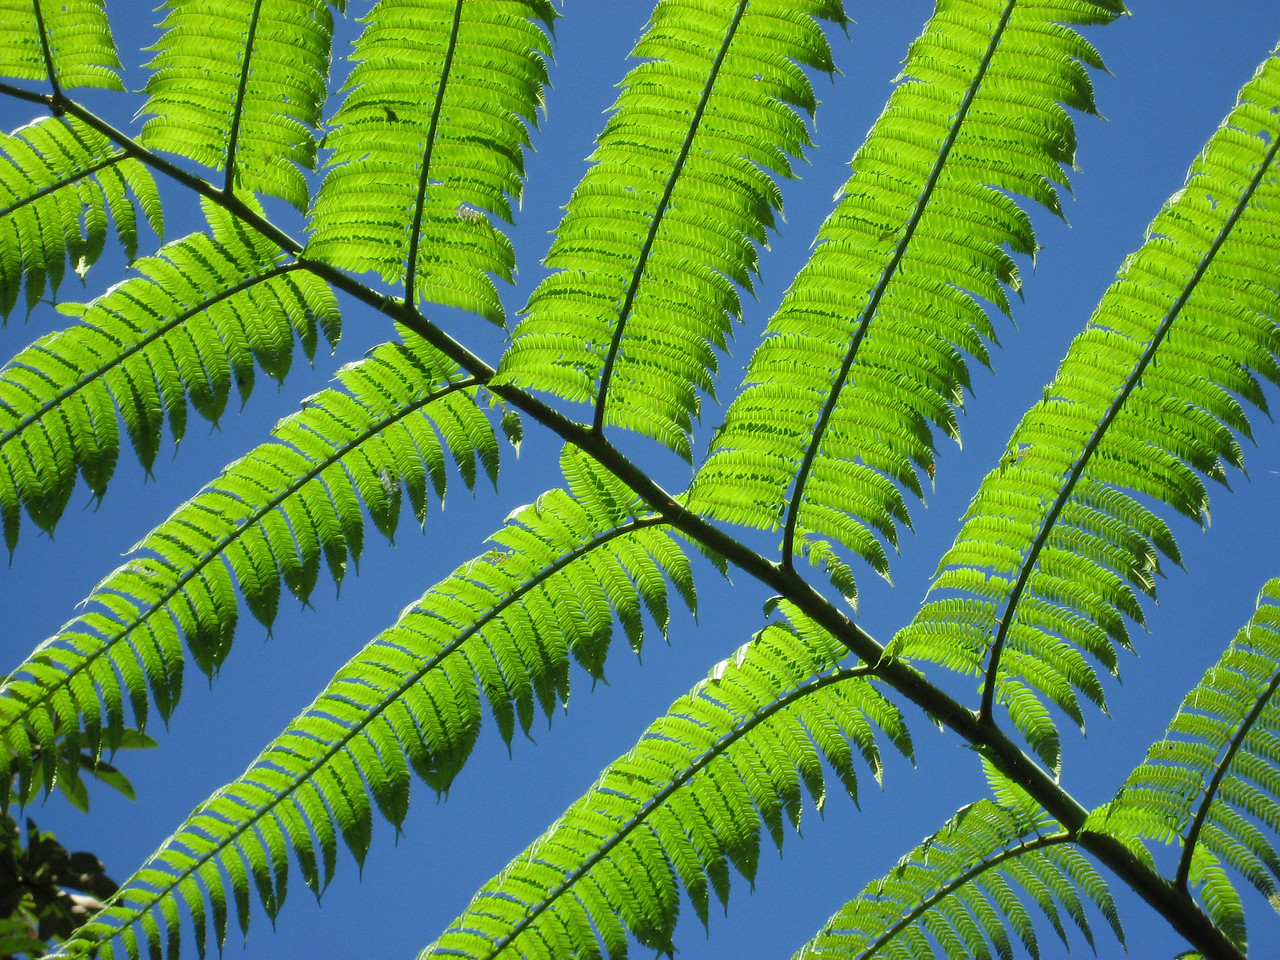 Here's another photo taken by Lynn of a fern leaf against a very blue sky